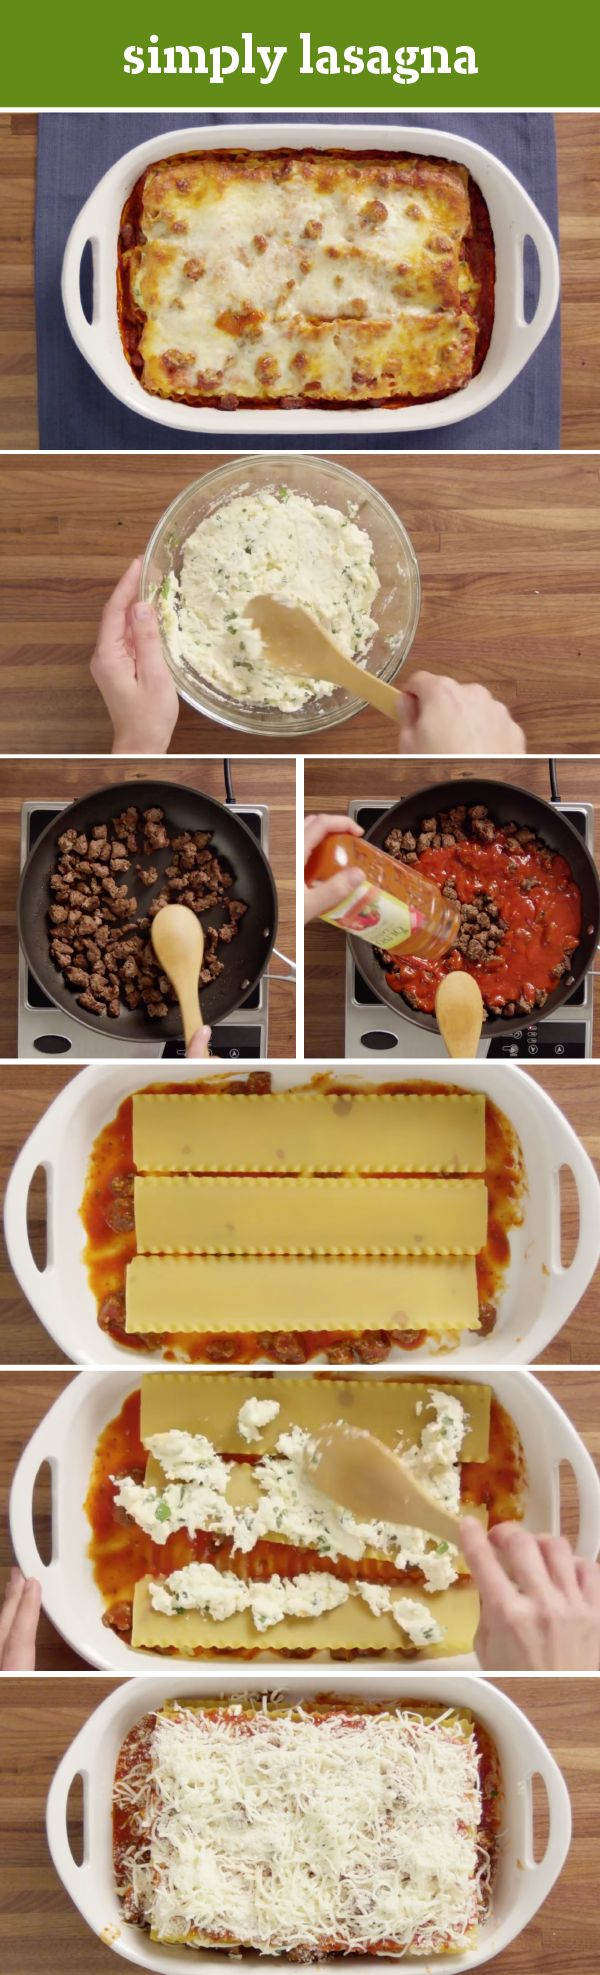 Simply Lasagna – Quite simply, this is the only lasagna recipe you'll ever need. It takes just 20 minutes to prep this cheesy crowd-pleaser in the oven—with OLIVO by CLASSICO traditional pasta sauce, KRAFT shredded mozzarella, grated Parmesan, and ricotta cheeses. This classic Italian dish serves 12, so it's perfect for serving at your next get-together with friends and family.